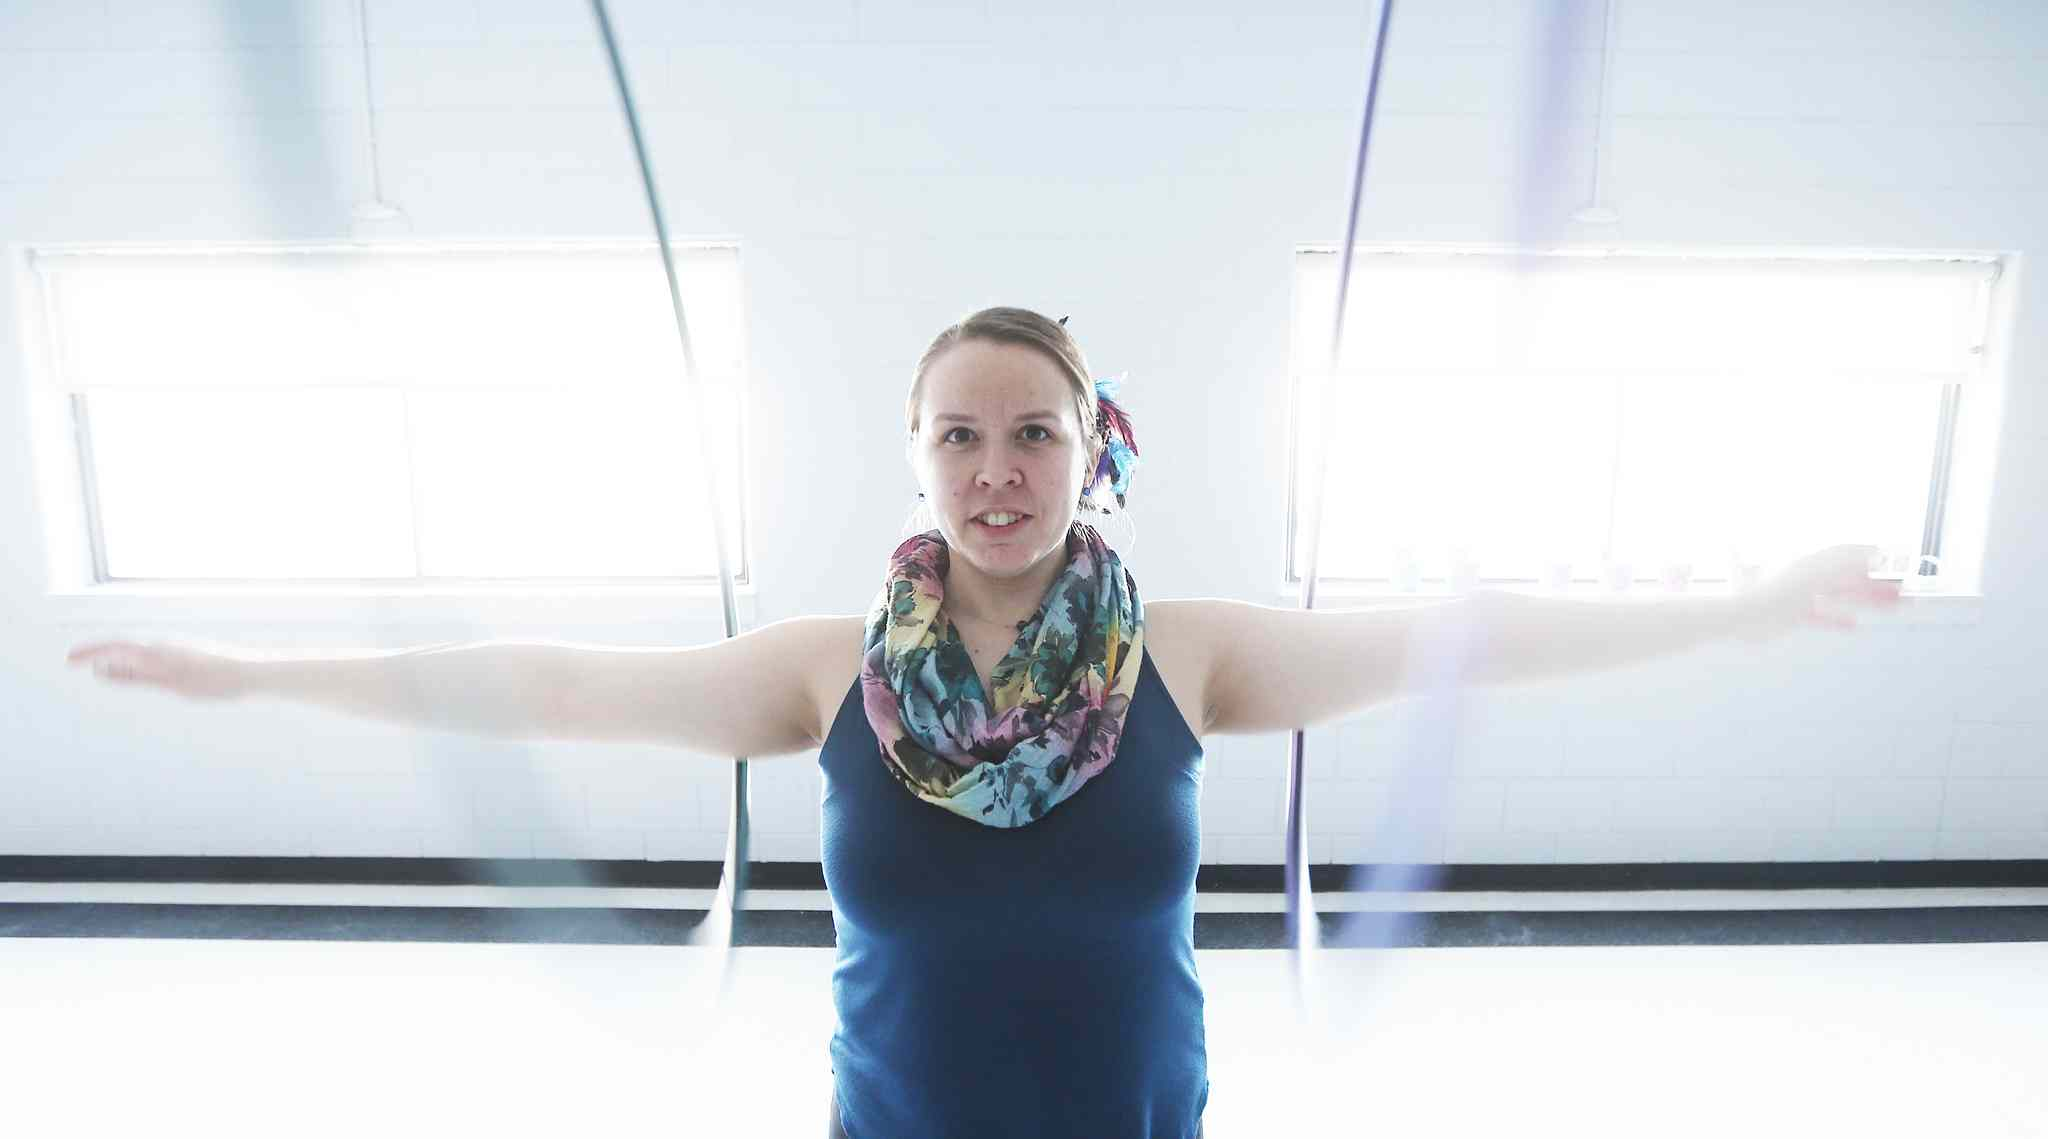 Karrie Blackburn, owner of Kurrent Motion, teaches an acrobatic hula hooping class at Valley Gardens Community Centre.